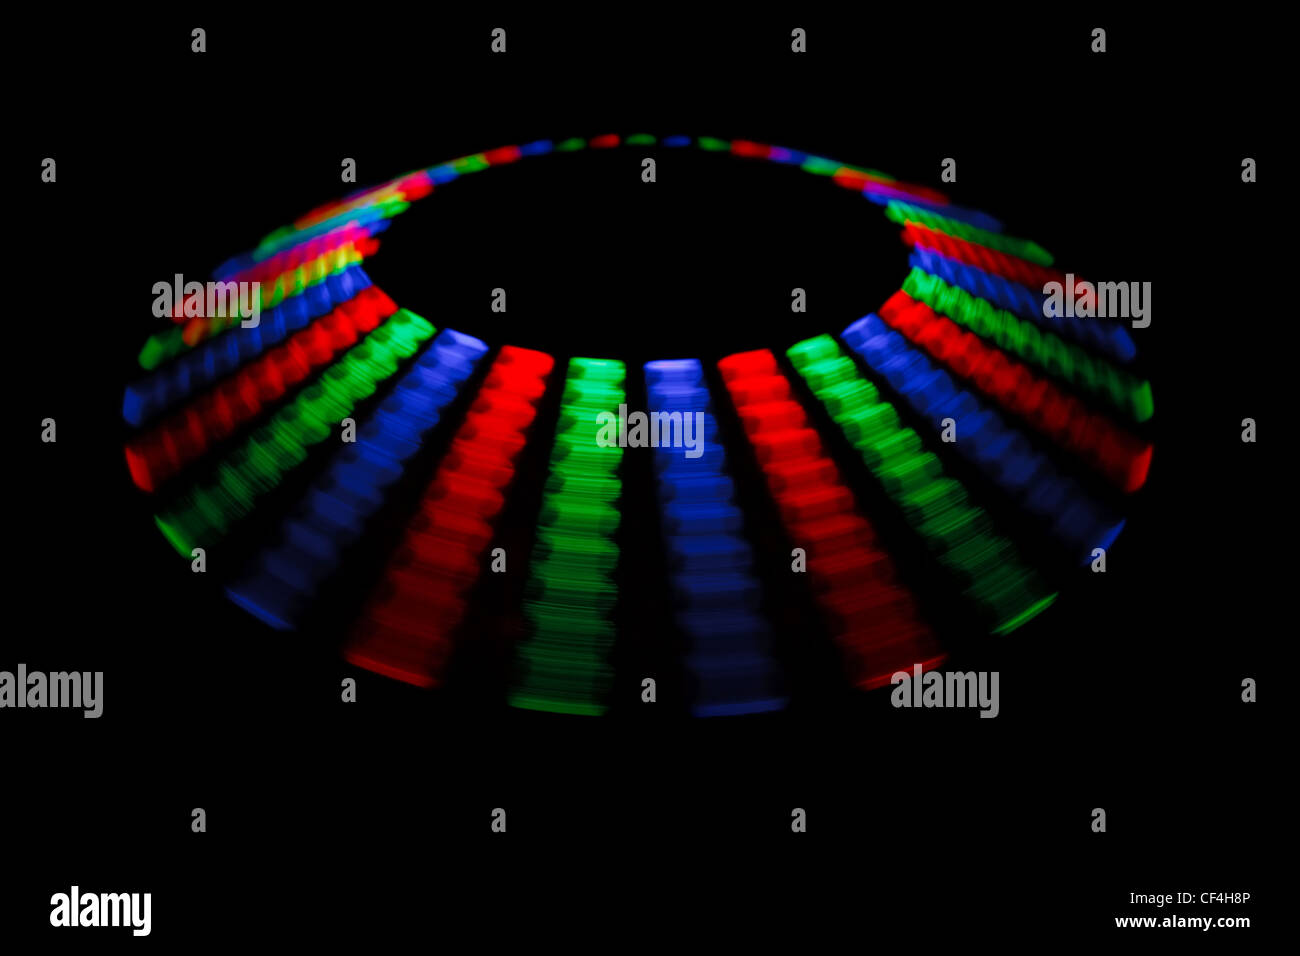 Colorful trace rotating LED in form of a disc on a black background. - Stock Image